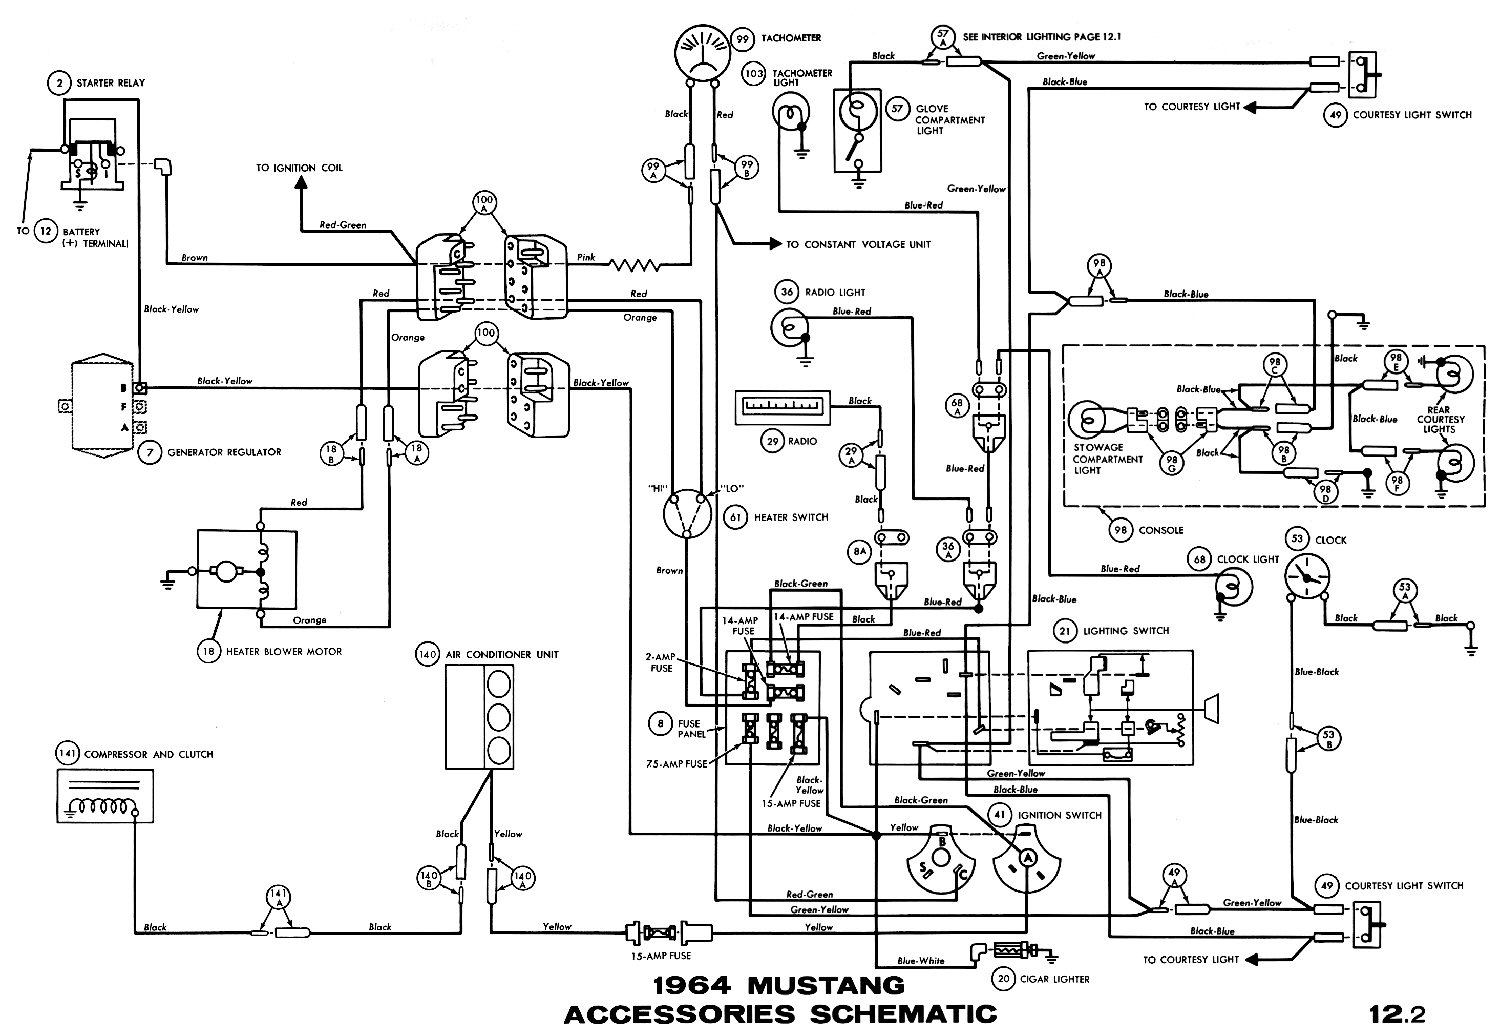 1964 wiring diagram wiring diagram for impala the wiring diagram mustang wiring diagrams average joe restoration 1964 mustang accessories pictorial or schematic air conditioner